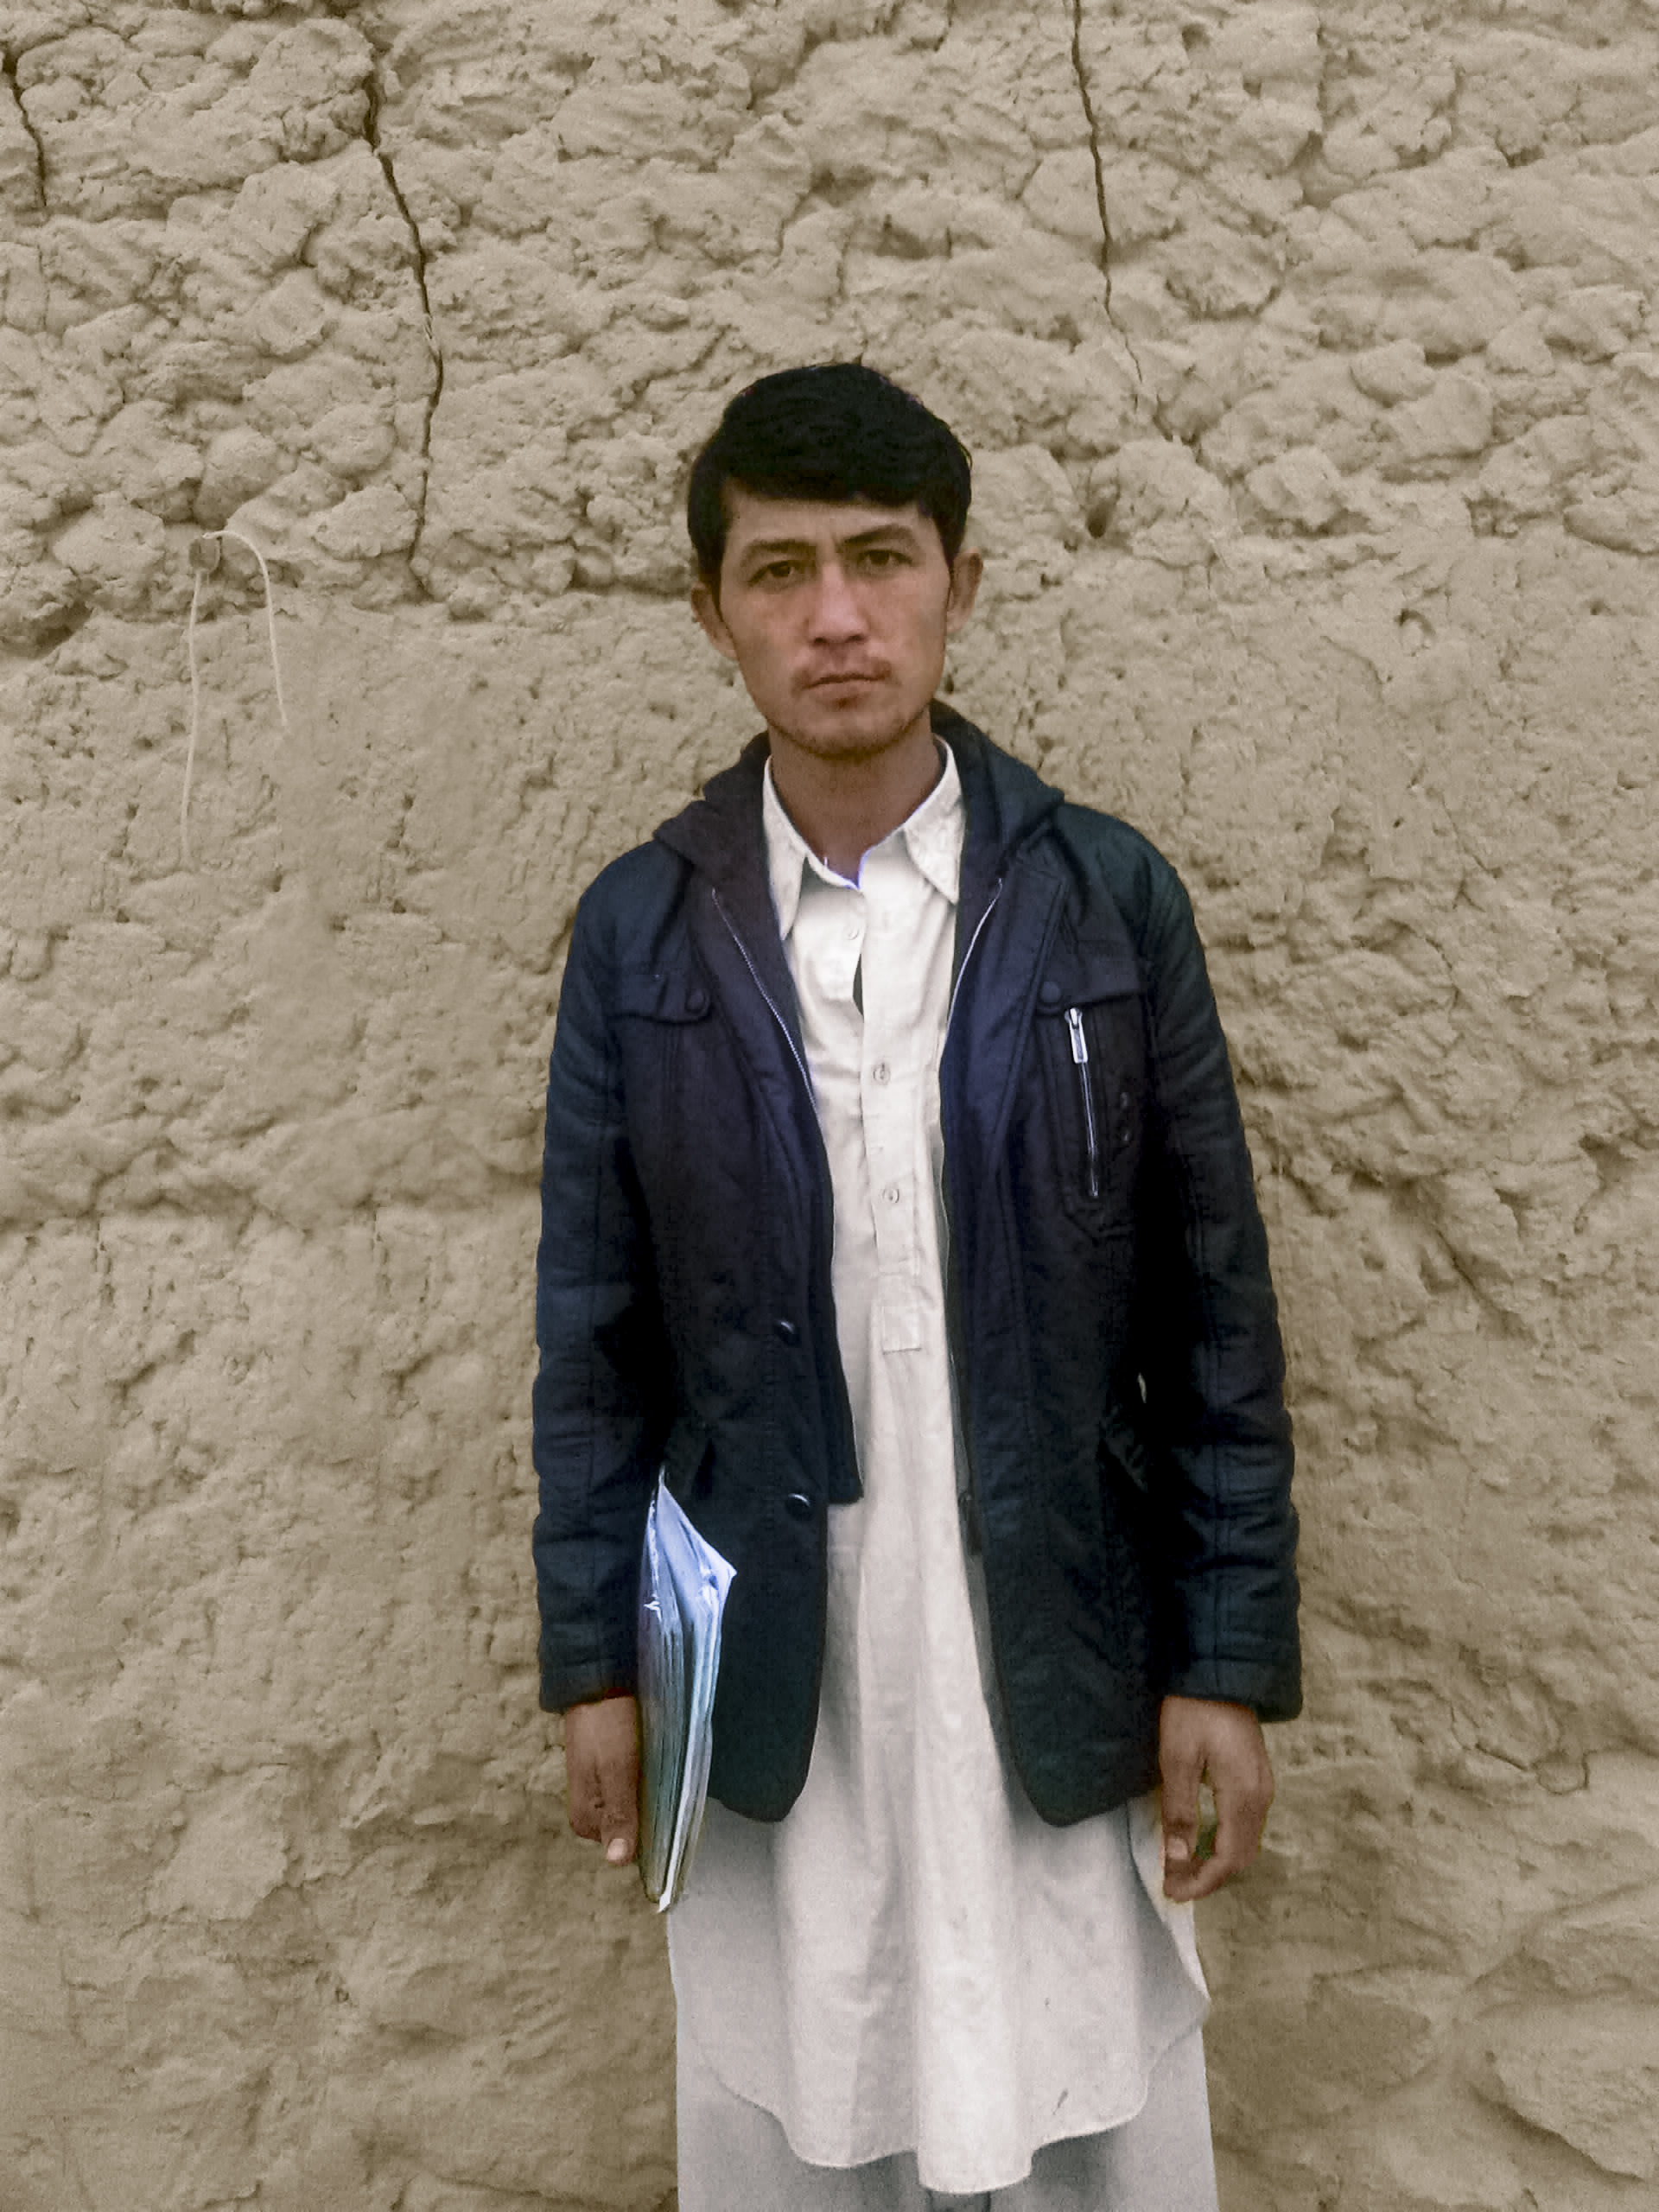 Islamuddin had recently finished a degree in education in the city and was home visiting his farming family. 'His father told me that Islamuddin hoped to become the headmaster of a school so he could help the people in his area,' a local said. Villagers said he was killed by three bullets as he climbed the hill behind his parents' house.